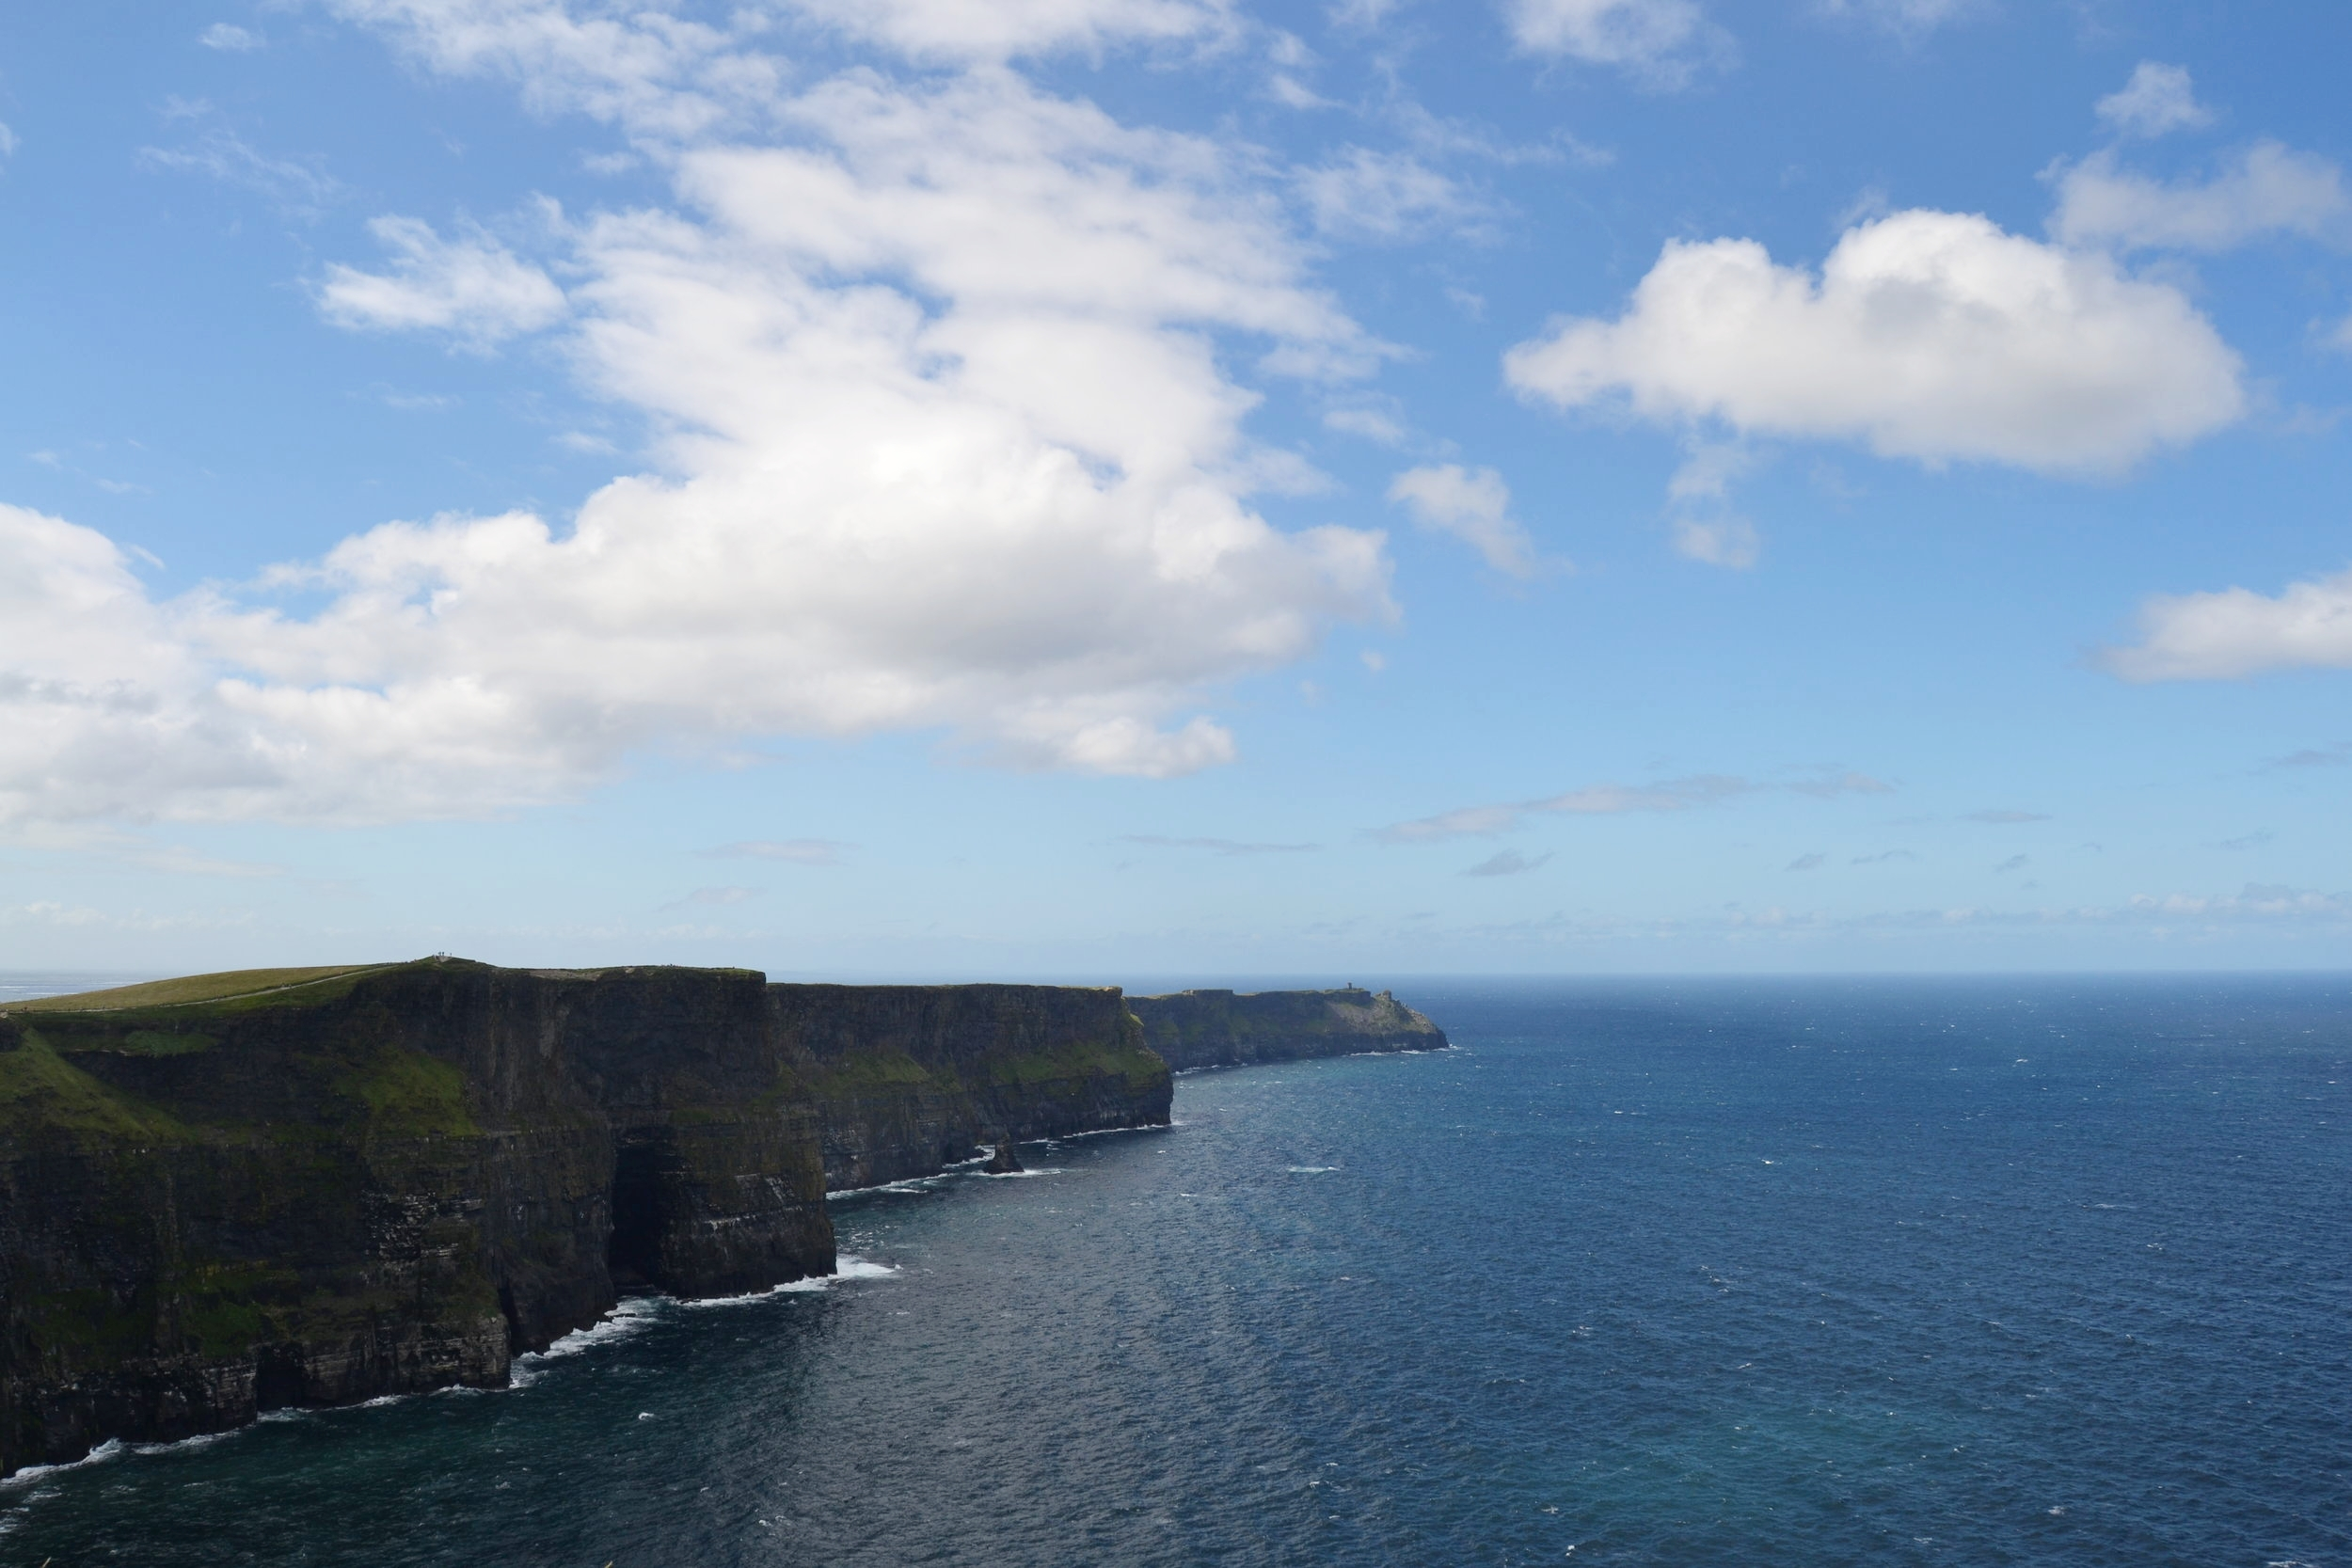 View of the Cliffs of Moher in western Ireland